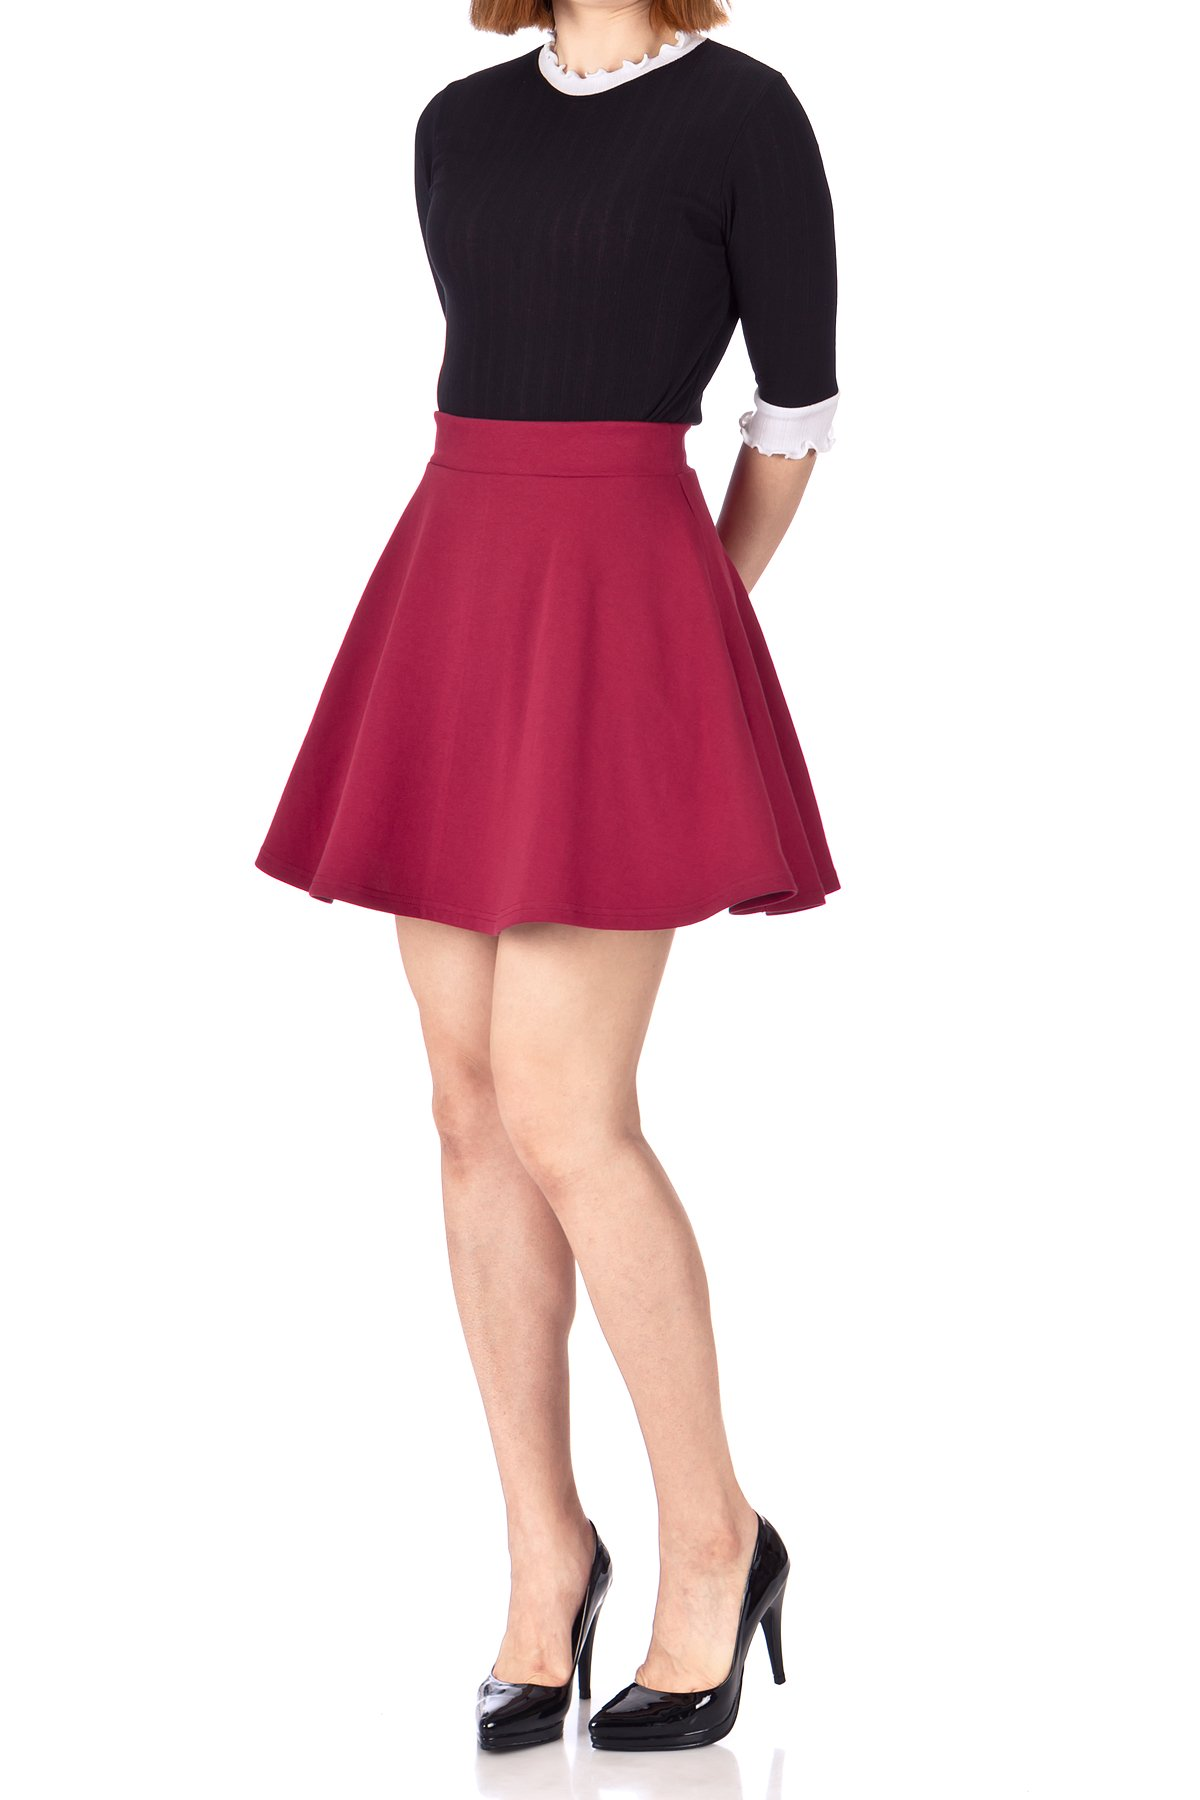 Basic Solid Stretchy Cotton High Waist line Flared Skater Mini Skirt Burgundy 05